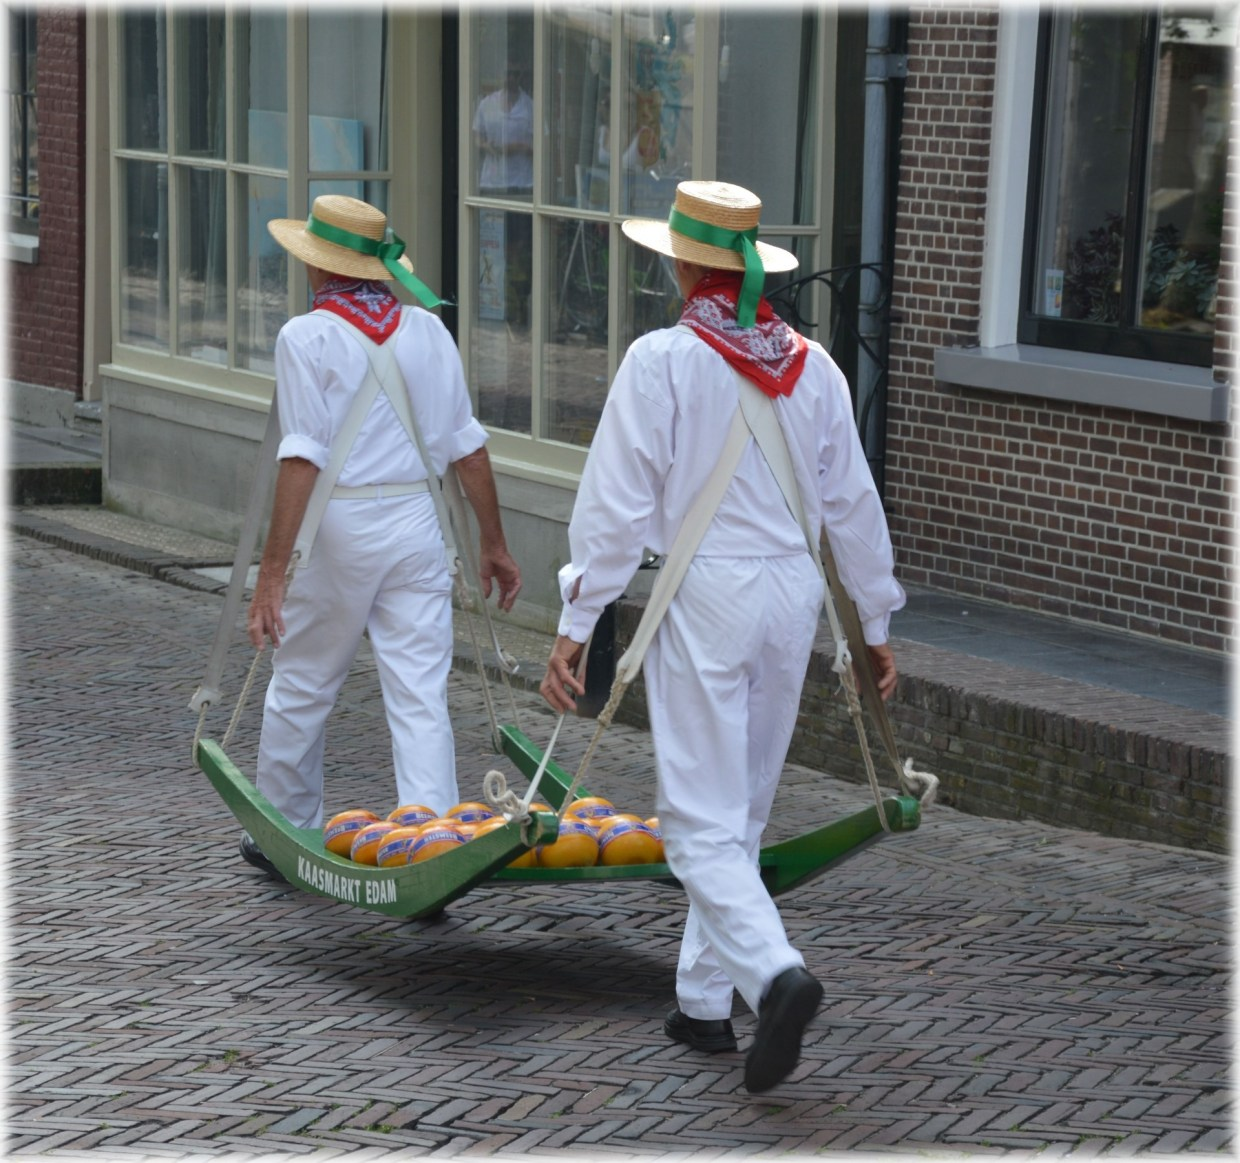 Discover the top things to do in Edam, Holland. Visit the Cheese Market and taste a variety of delicious cheeses.